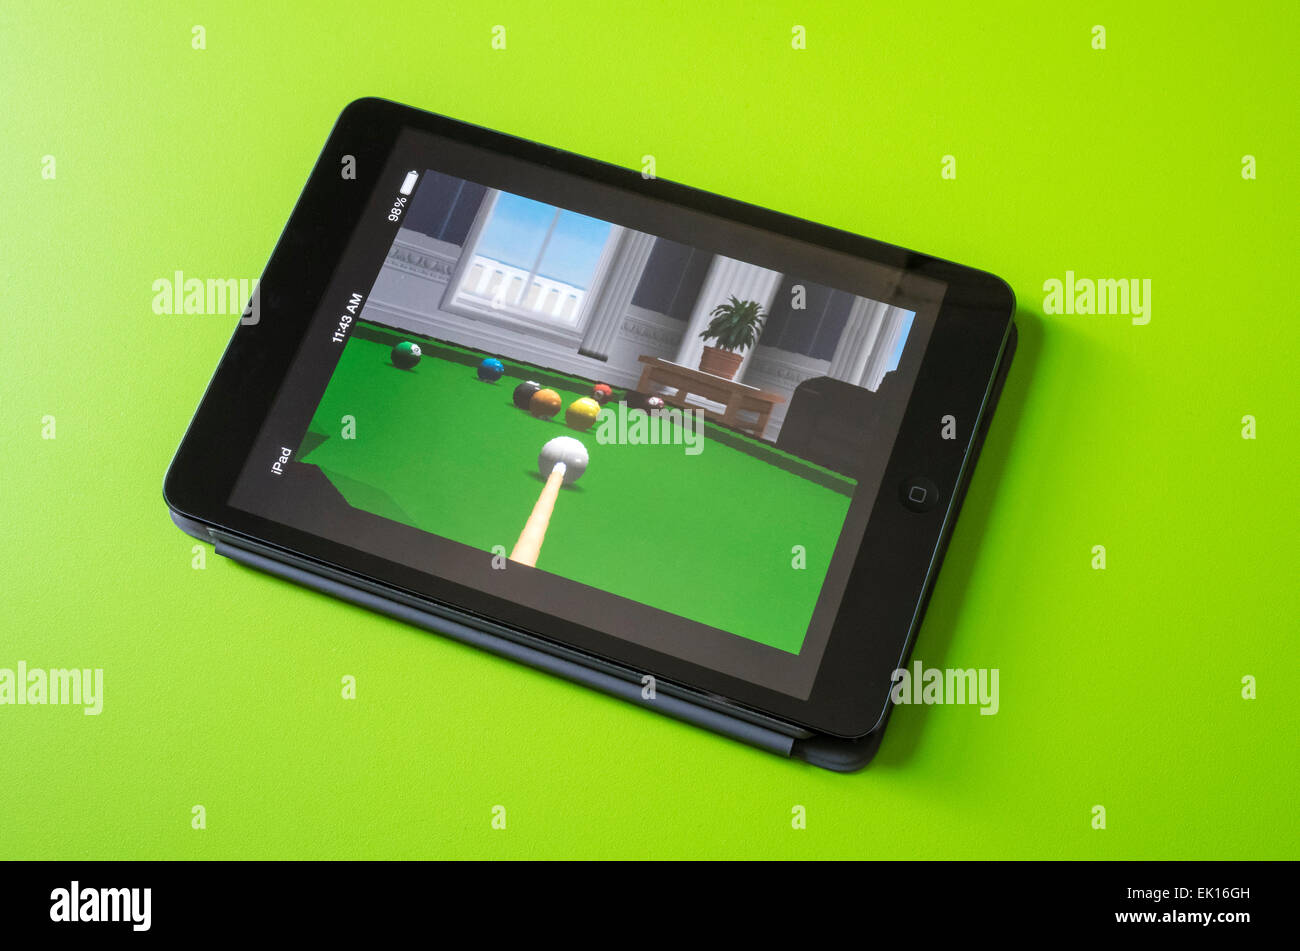 Apple iPad mini jeu de billard virtuelle montrant Photo Stock